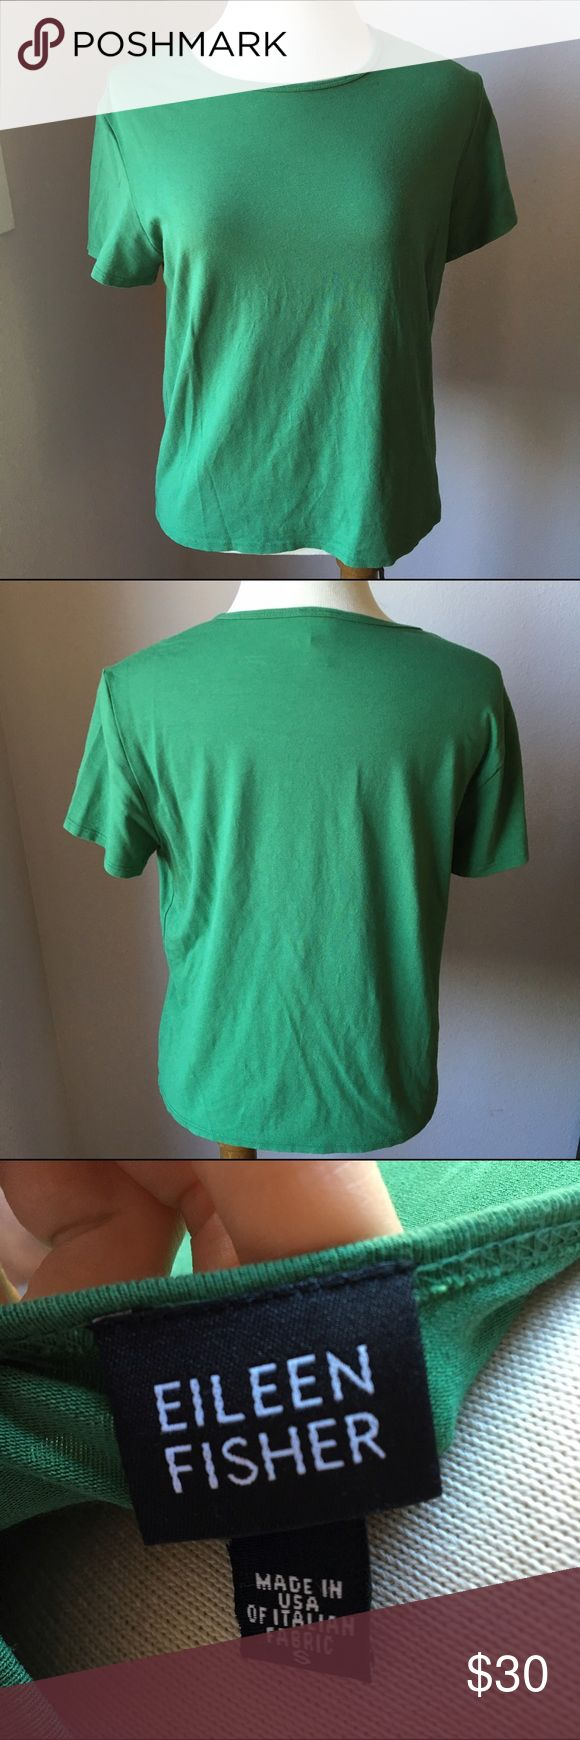 Eileen Fisher Green Short Sleeve Top Size Small Great condition. Bundle & Save 😊 Eileen Fisher Tops Tees - Short Sleeve